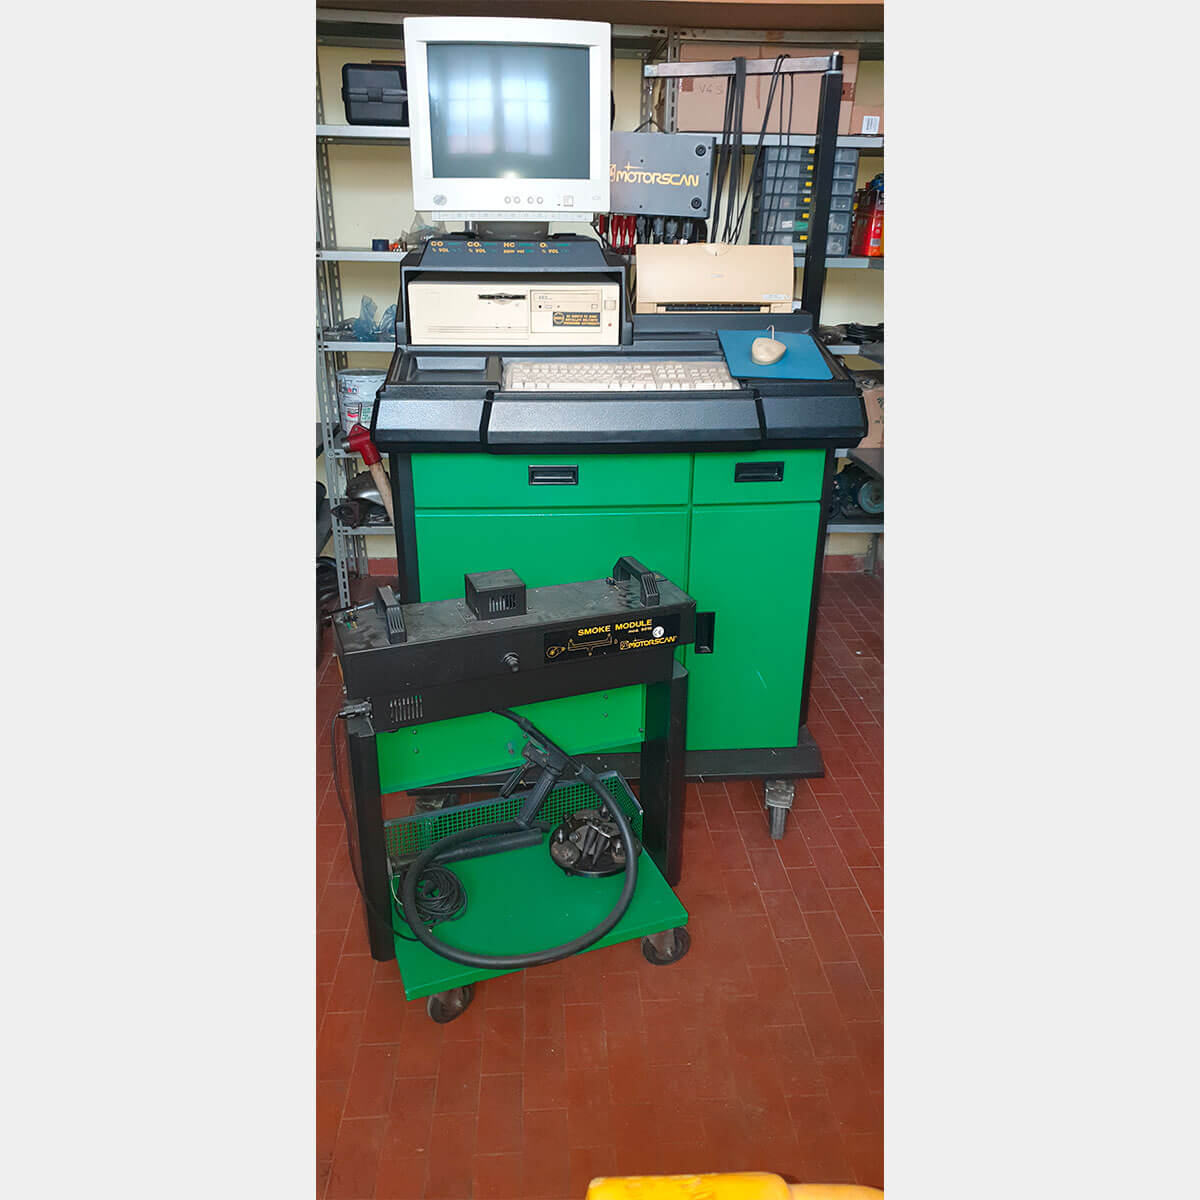 MOTORSCAN MULTEX PC 8000 Used Diagnostic Desk